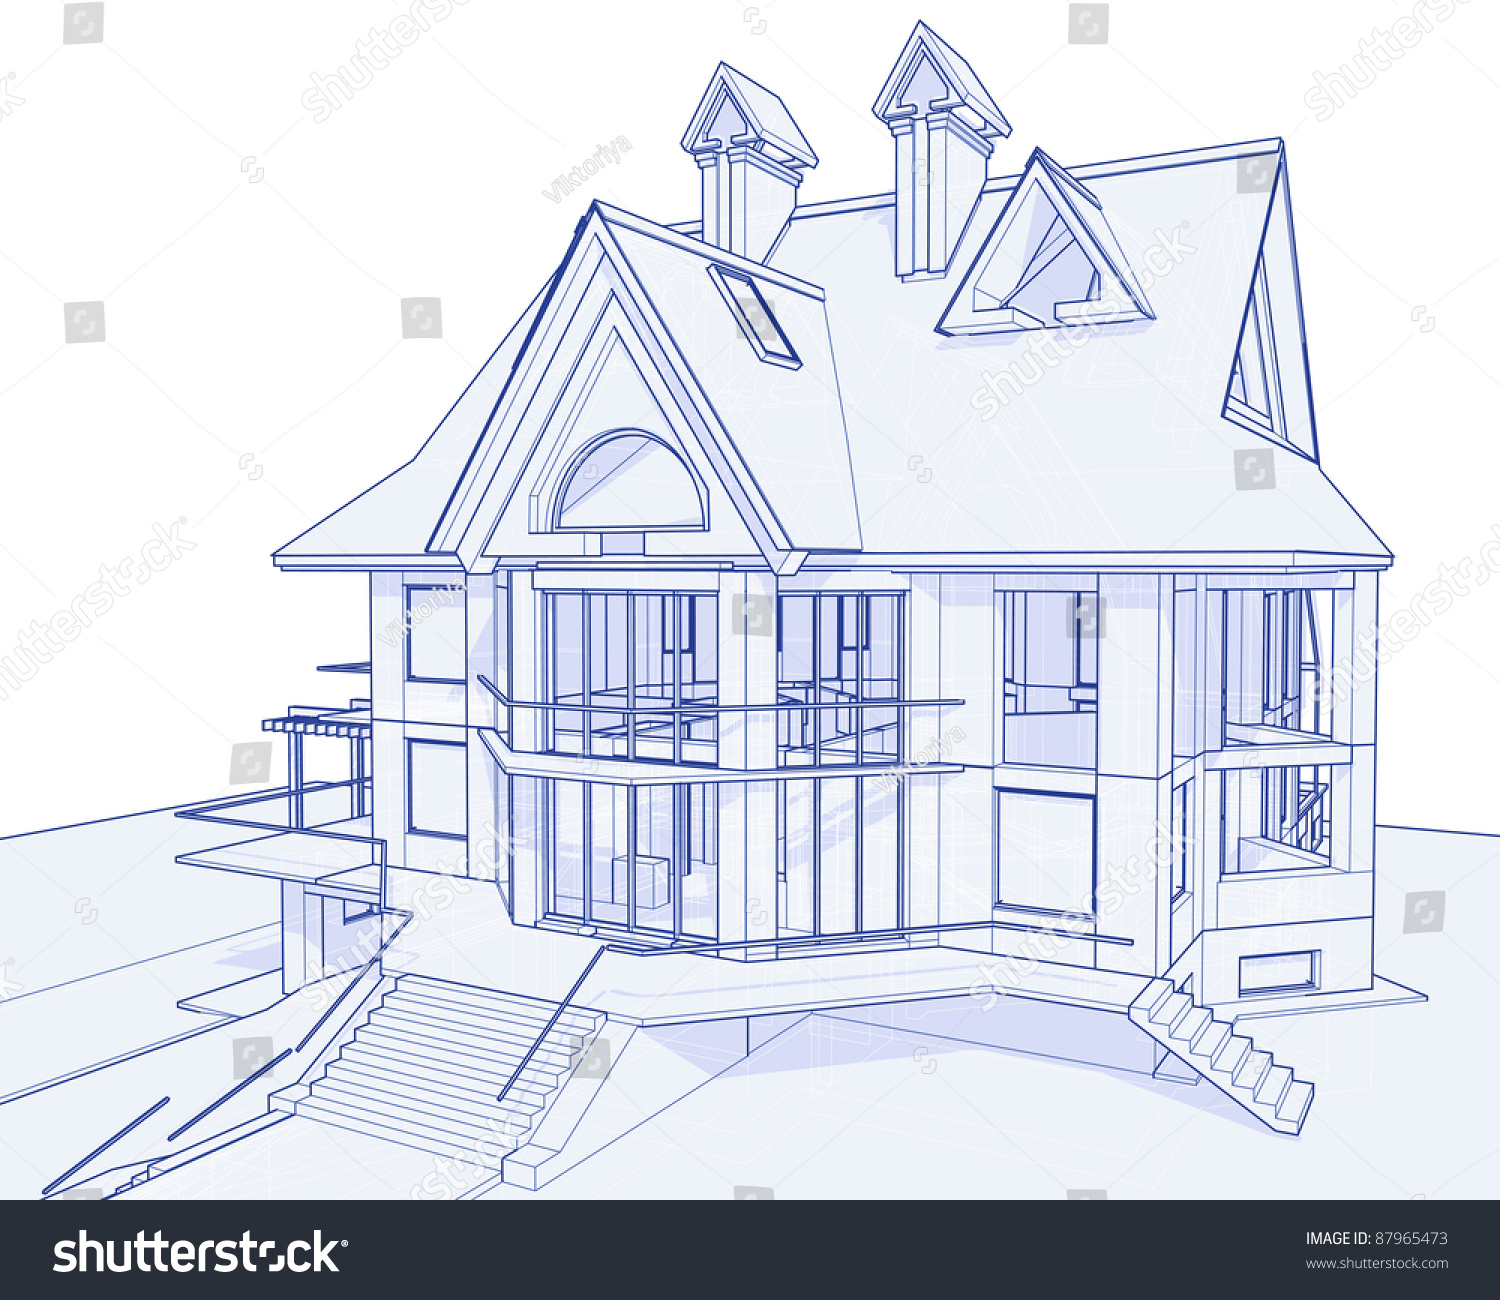 Great 3d Blueprint House: Technical Draw. Bitmap Copy My Vector ID 17455723